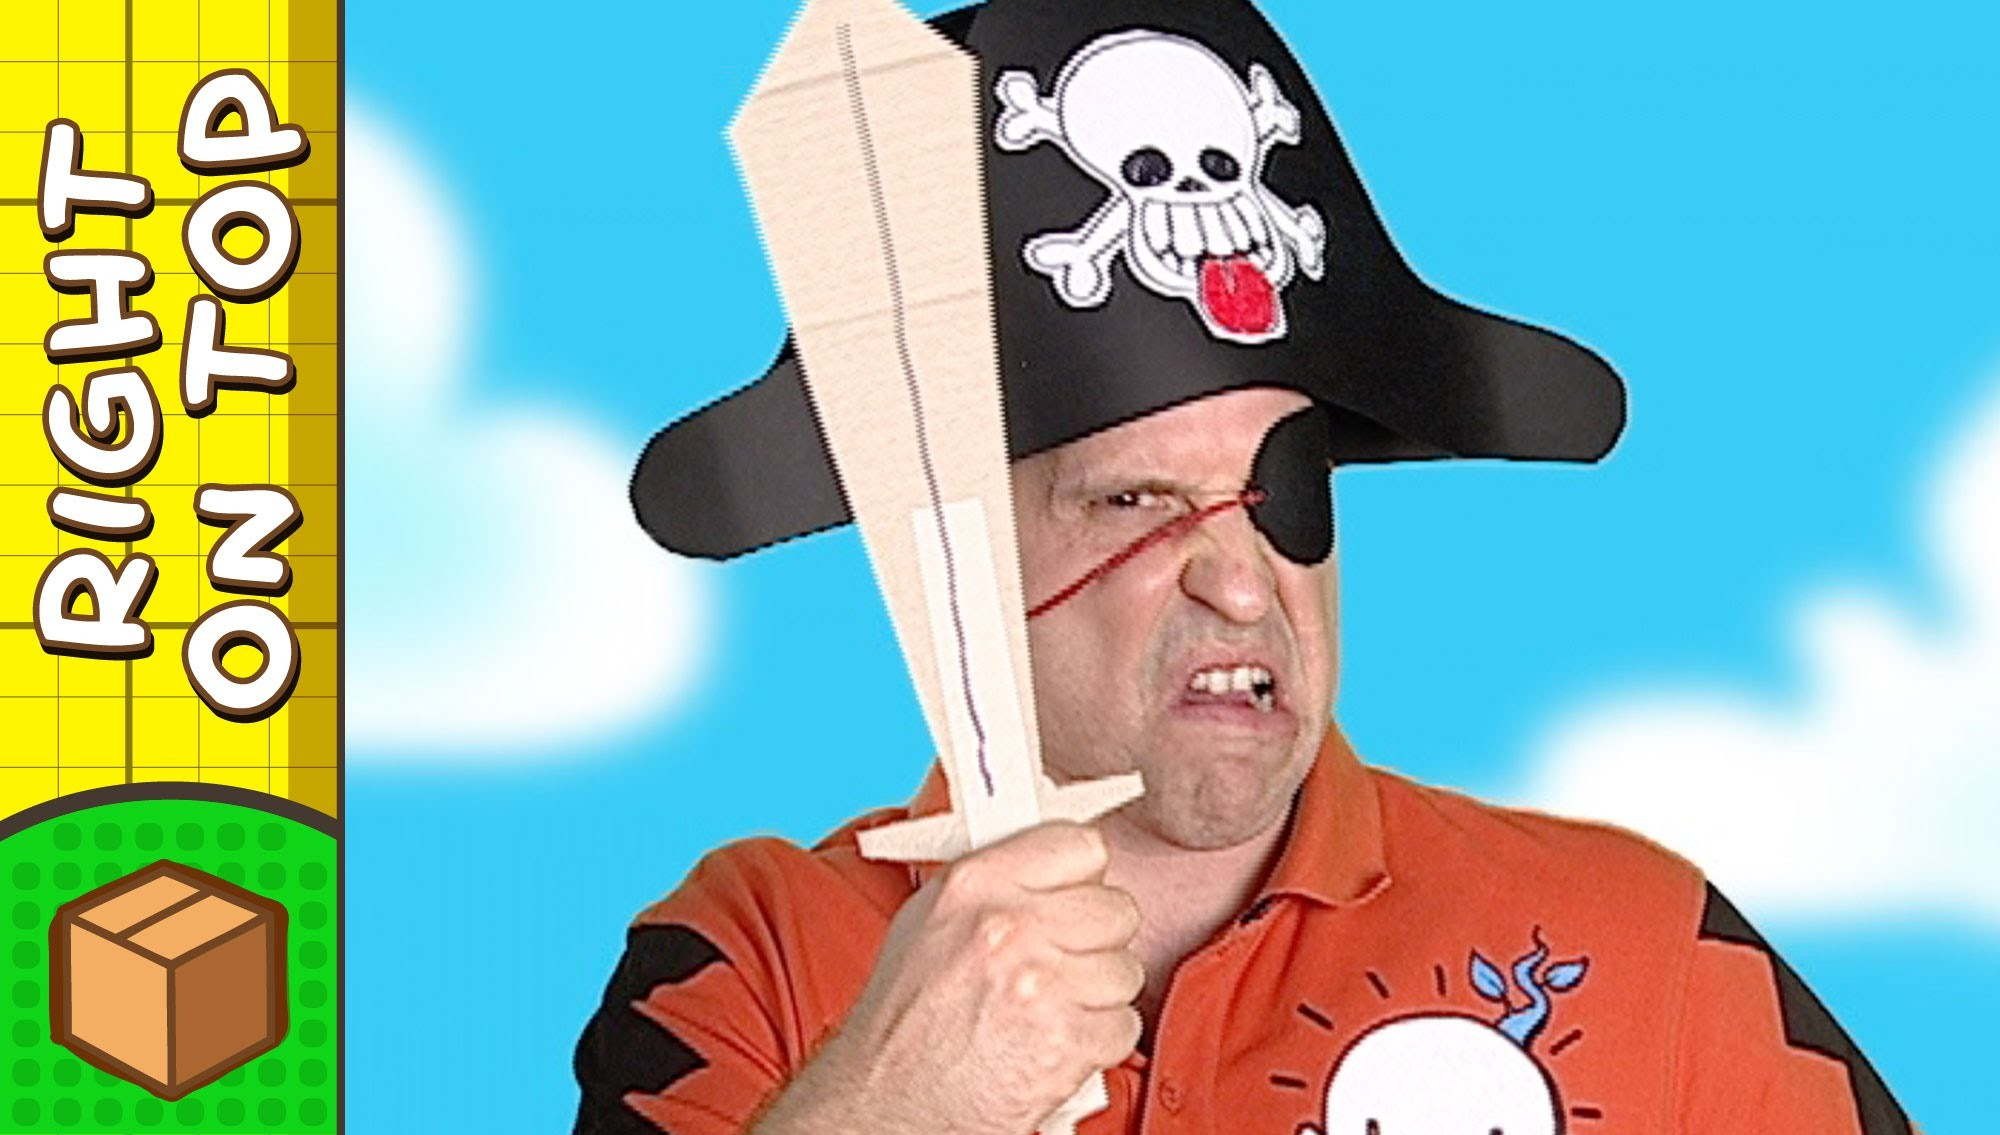 Paper Pirate Hat   Crafts Ideas For Kids   DIY on BoxYourSelf